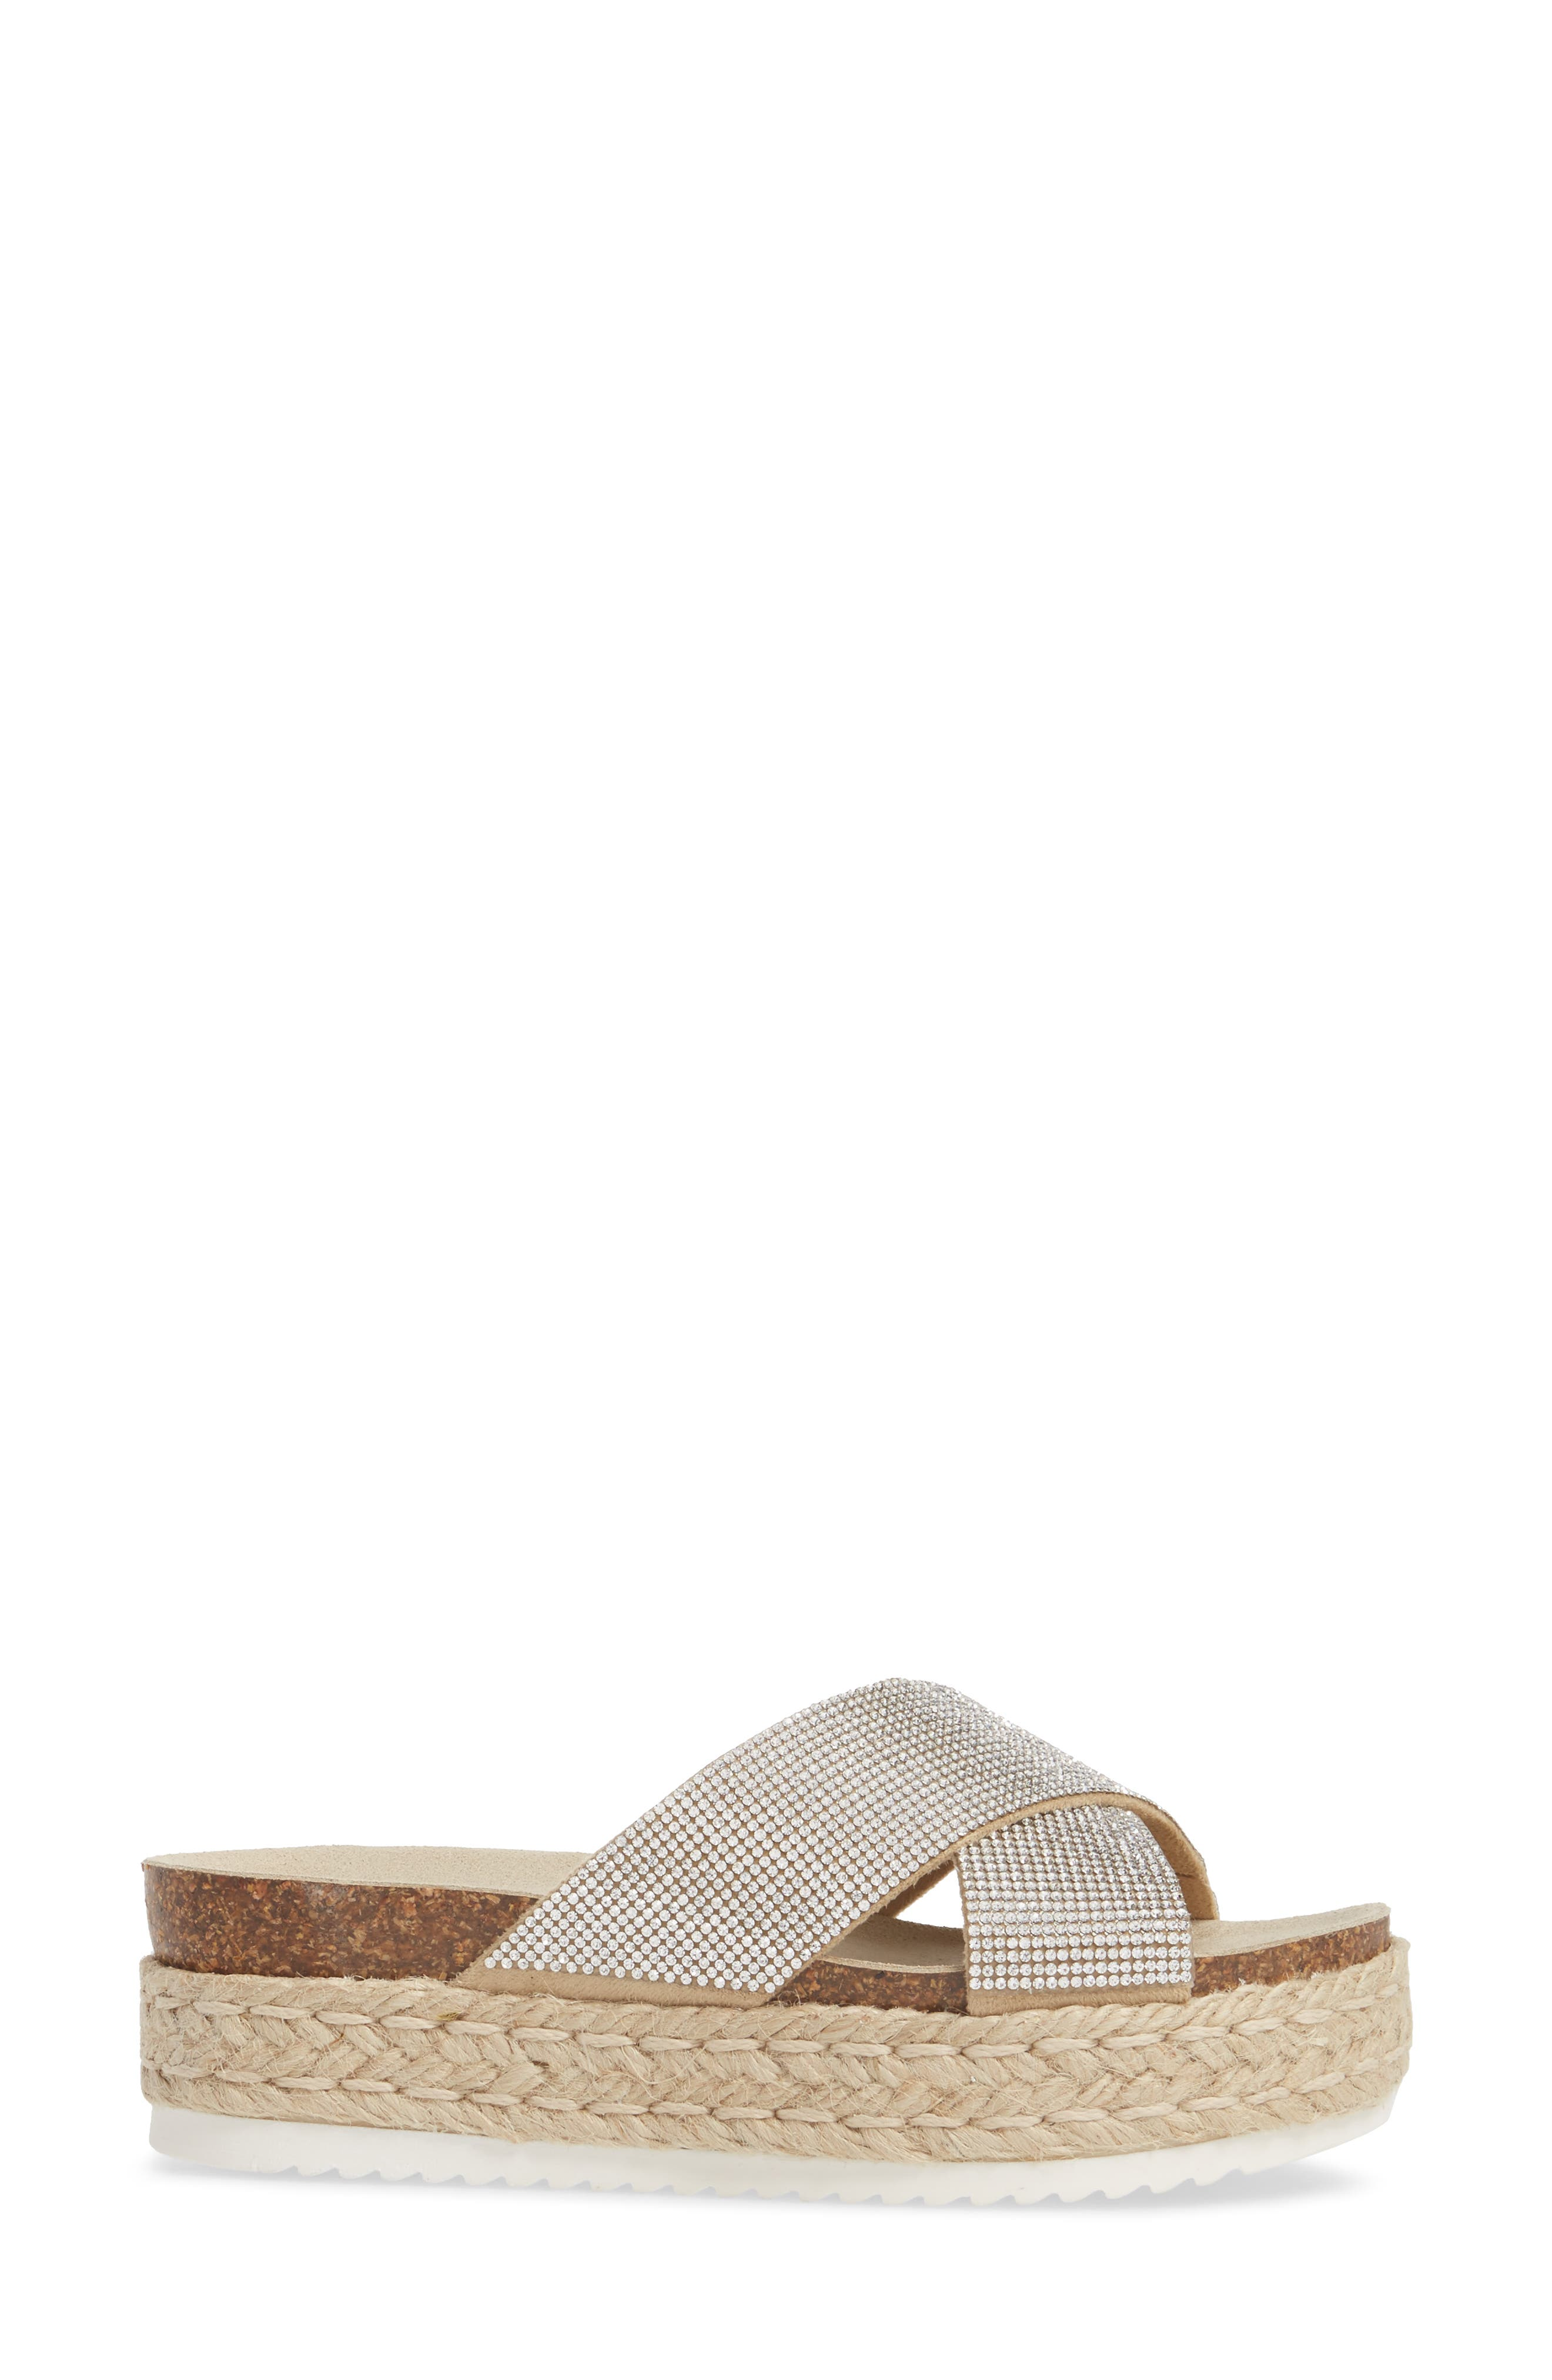 Arran-R Platform Espadrille Sandal,                             Alternate thumbnail 3, color,                             Rhinestone